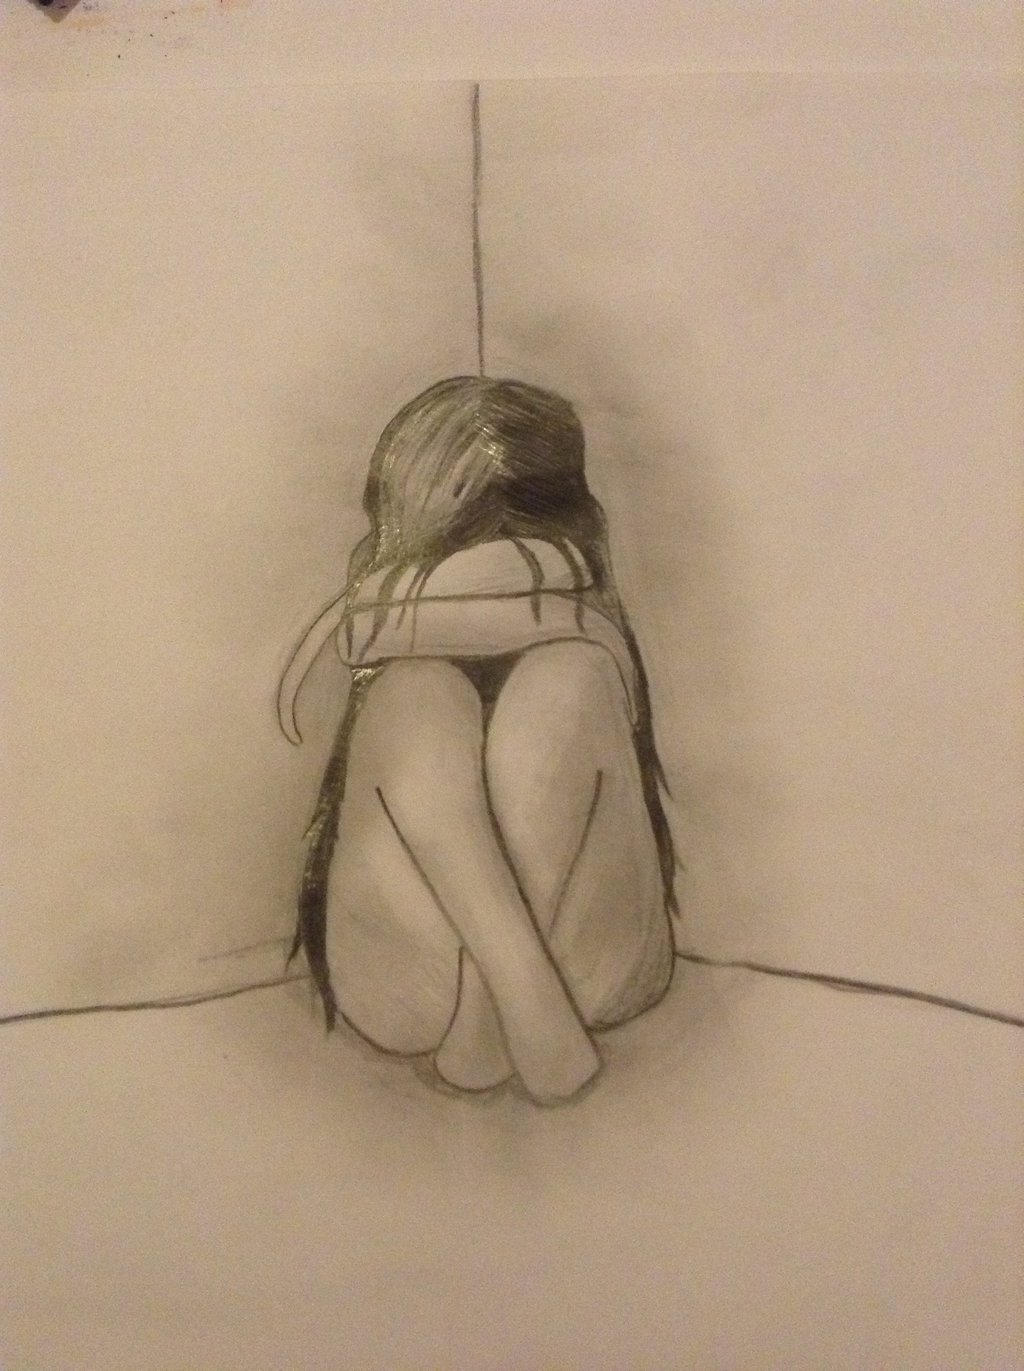 Easy pencil drawings of sadness more information modni auto